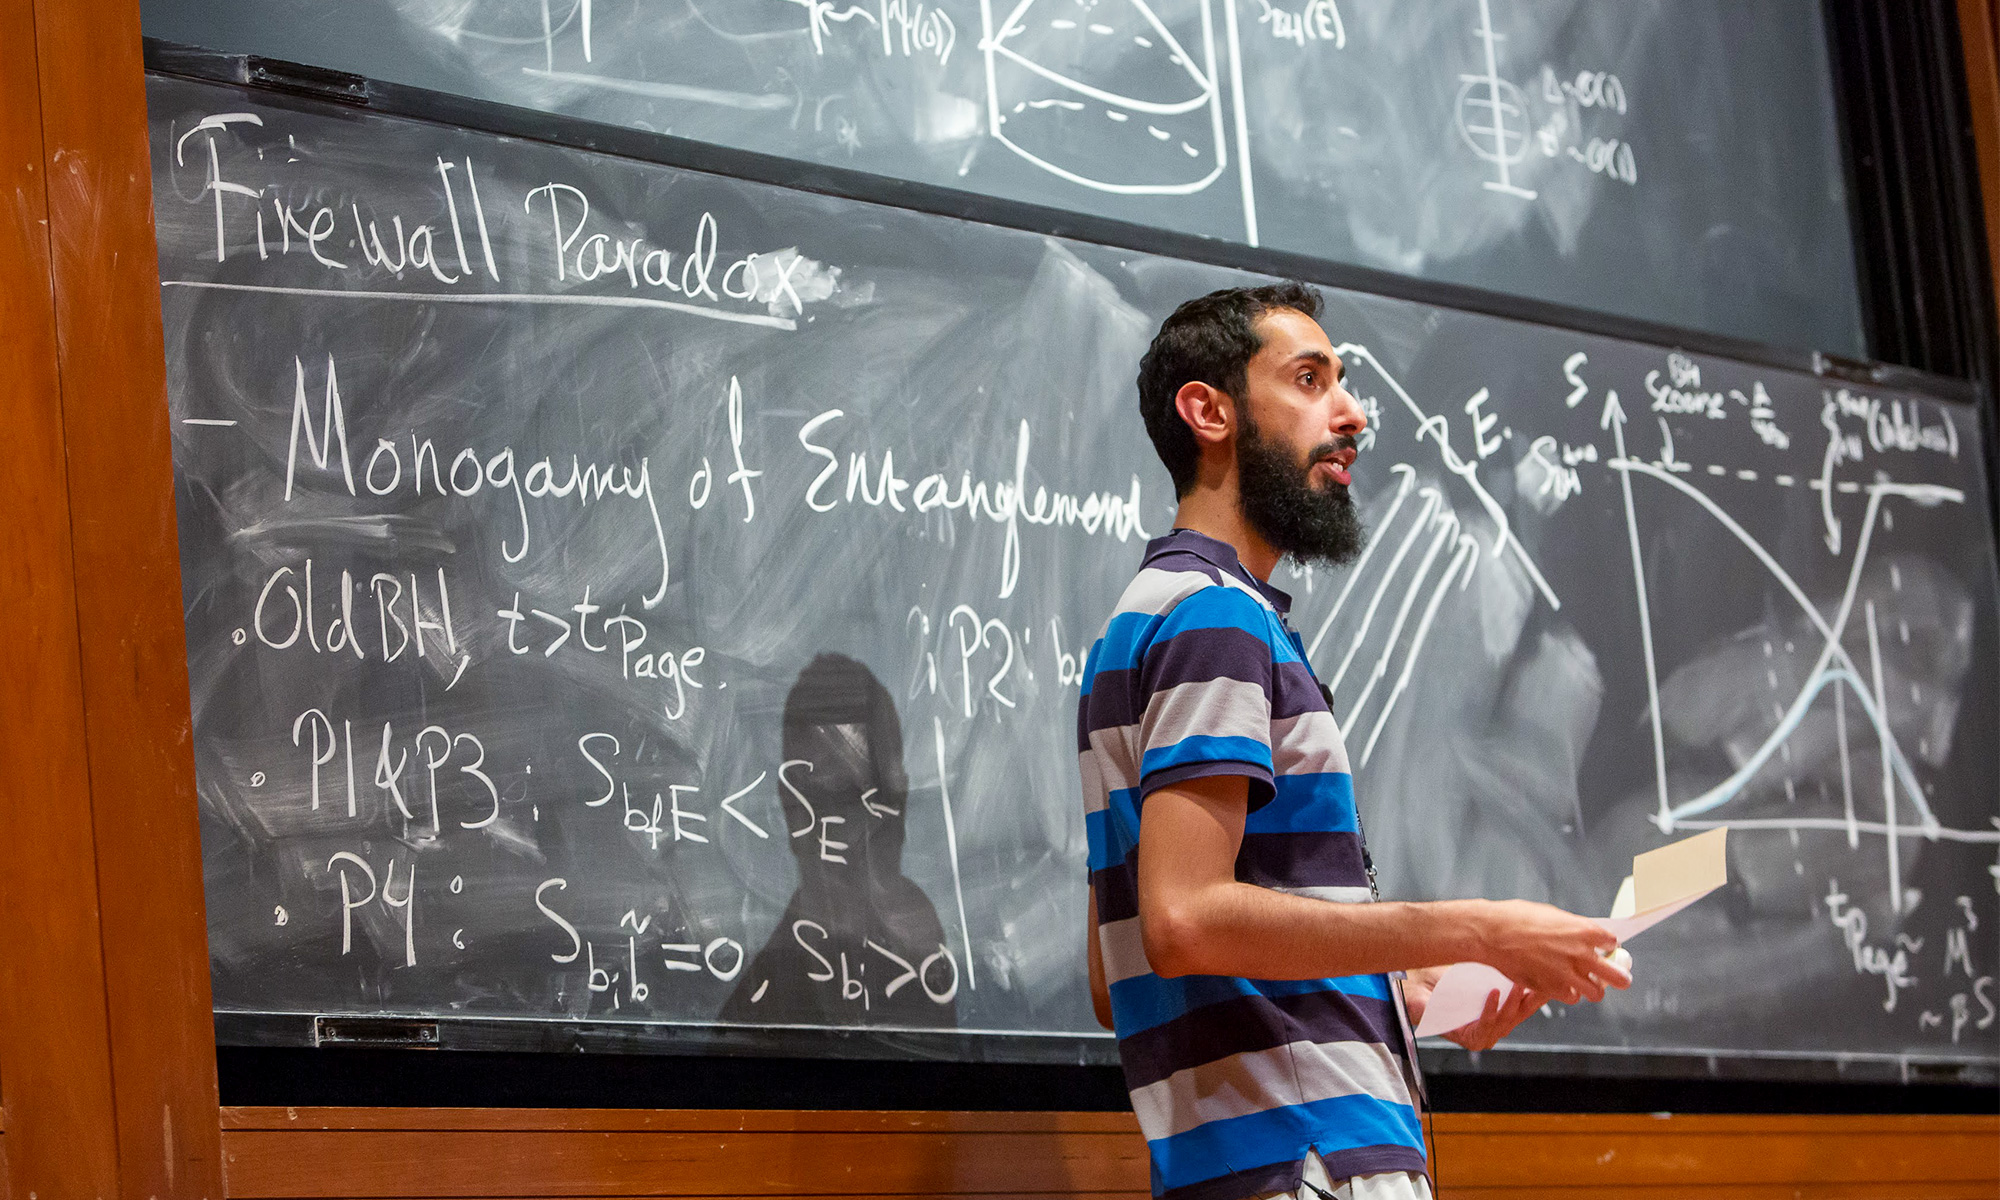 Ahmed Almheiri lecturing about the firewall paradox in front of a blackboard.